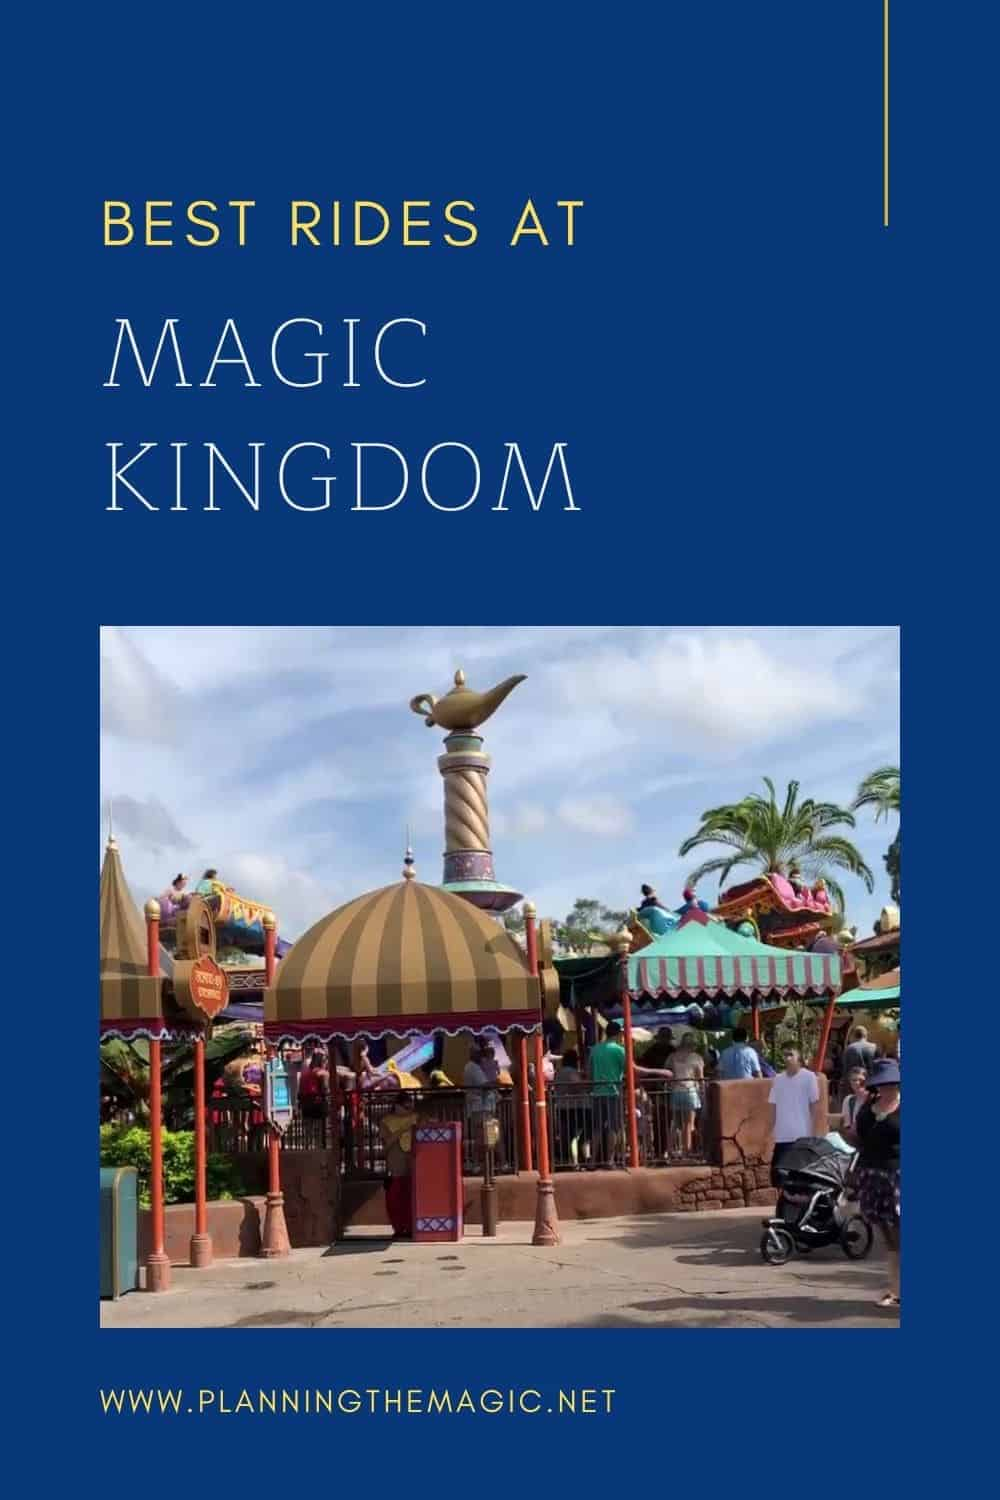 Best Rides in the Magic Kingdom